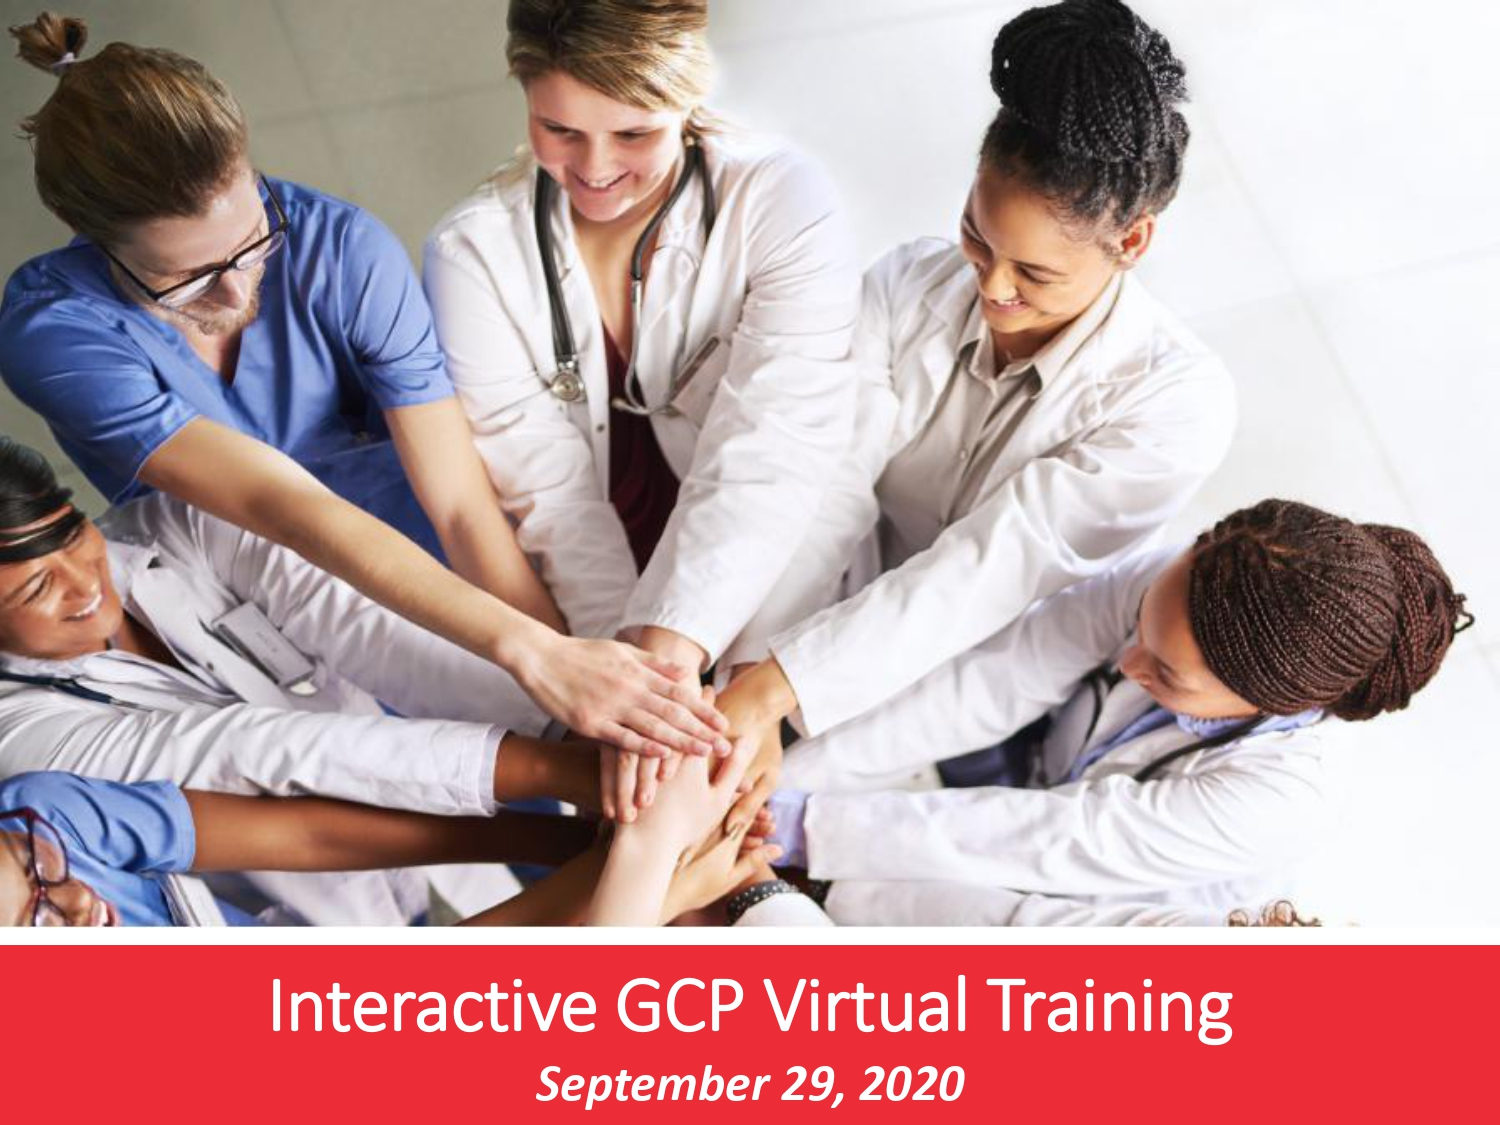 Interactive GCP Virtual Training